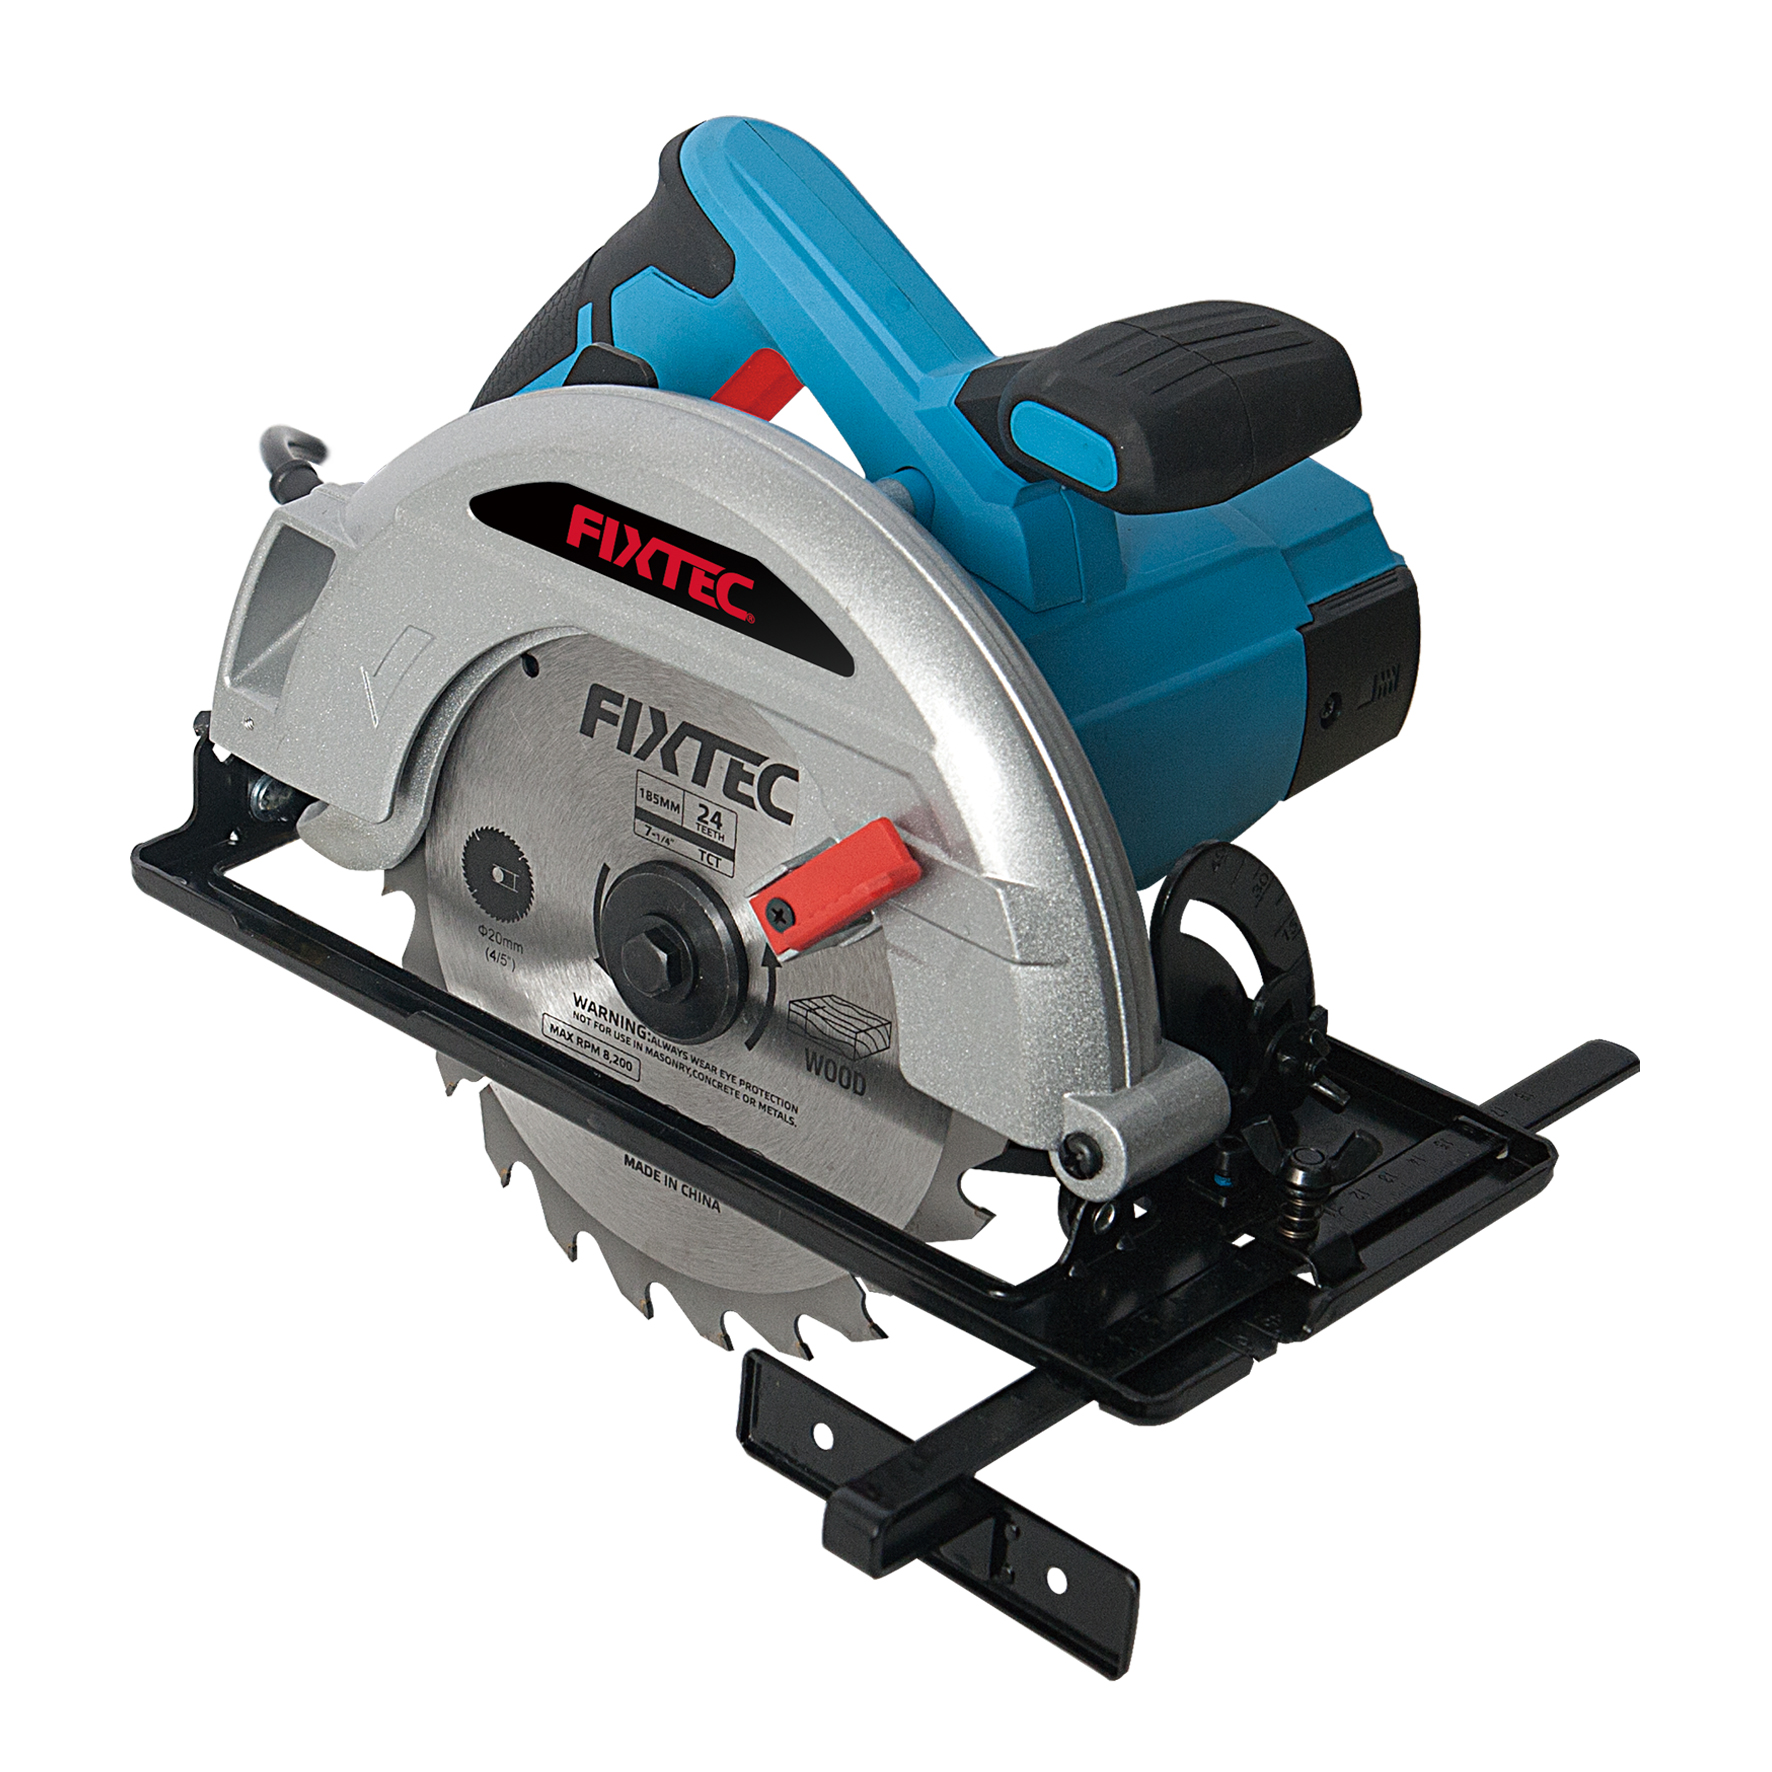 FIXTEC 1400W 185MM Circular <strong>Saw</strong>